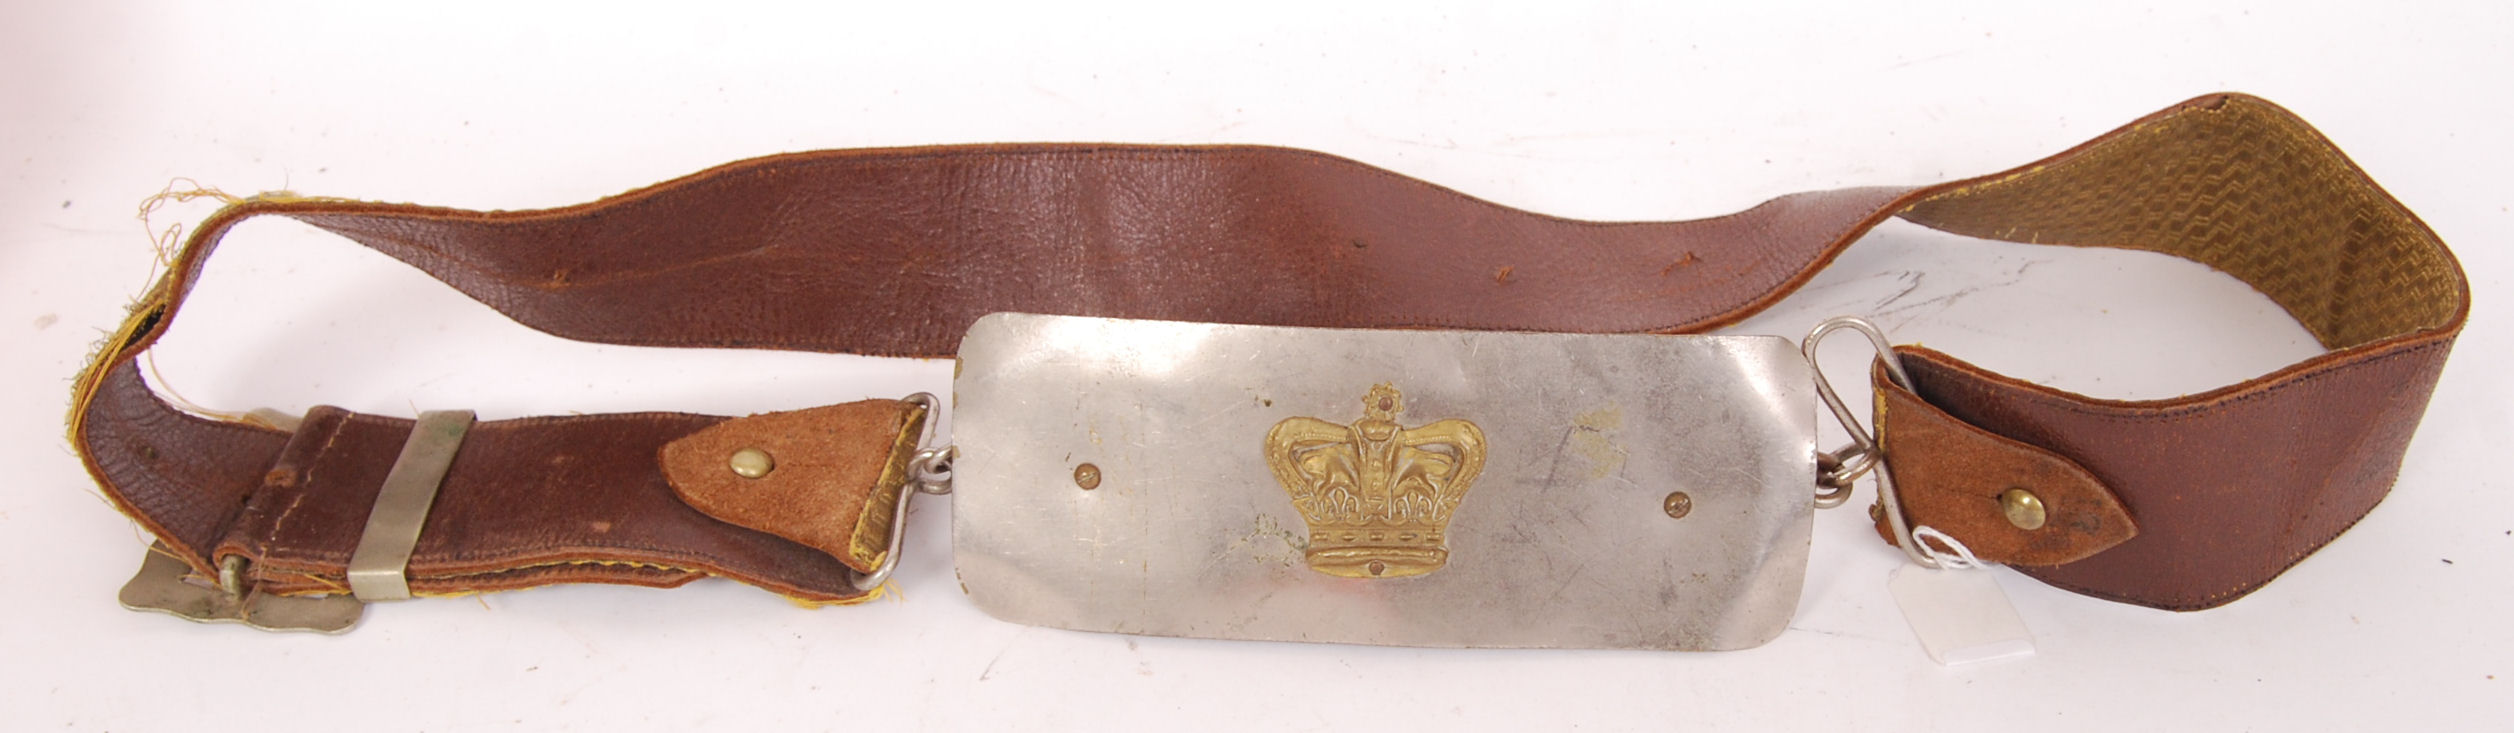 Lot 218 - VICTORIAN CROSS BELT